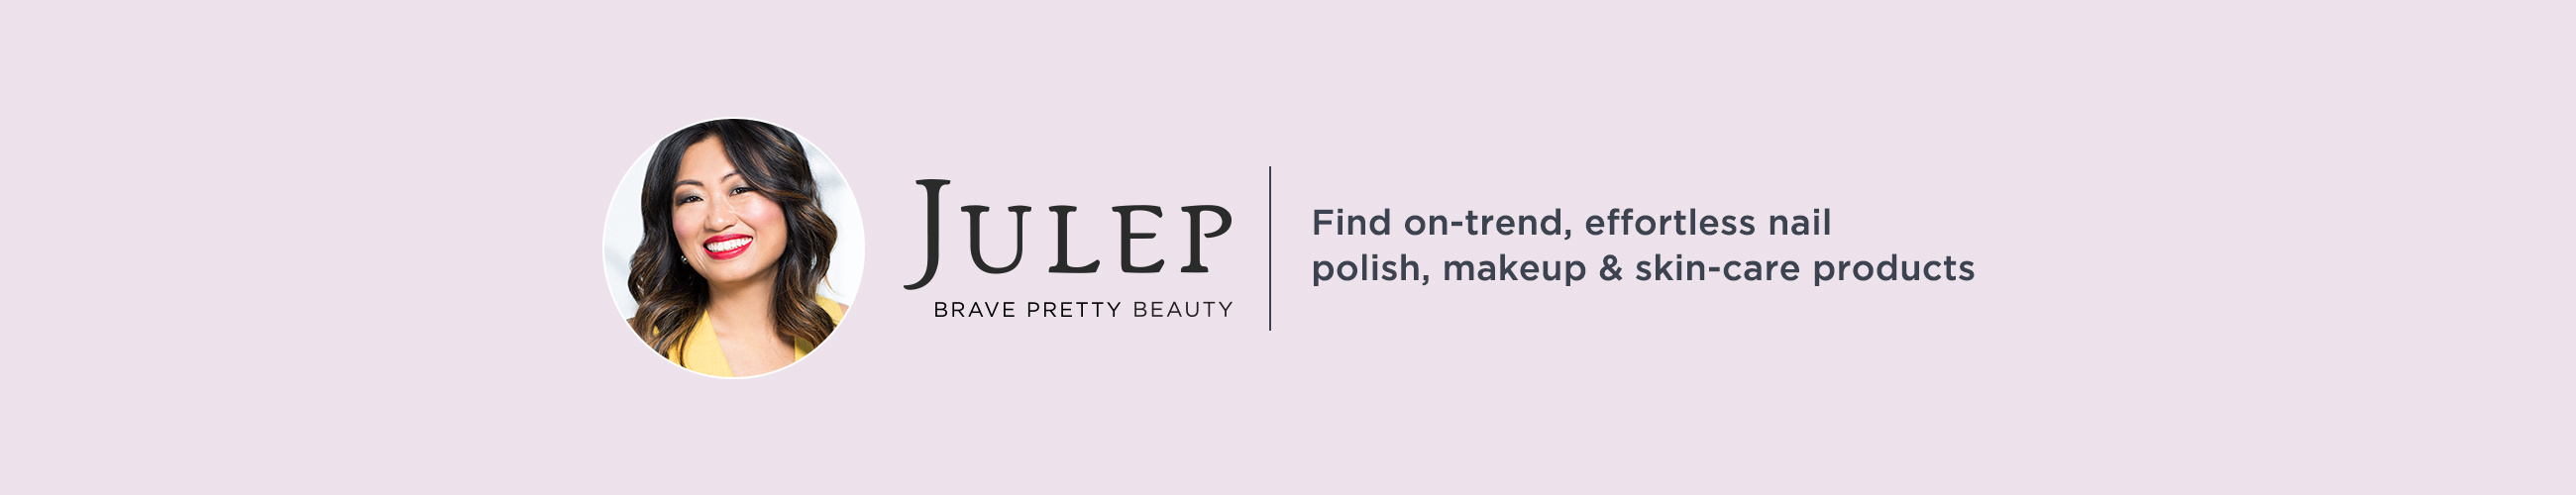 Julep Brave Pretty Beauty - Find on-trend, effortless nail polish, makeup & skin-care products